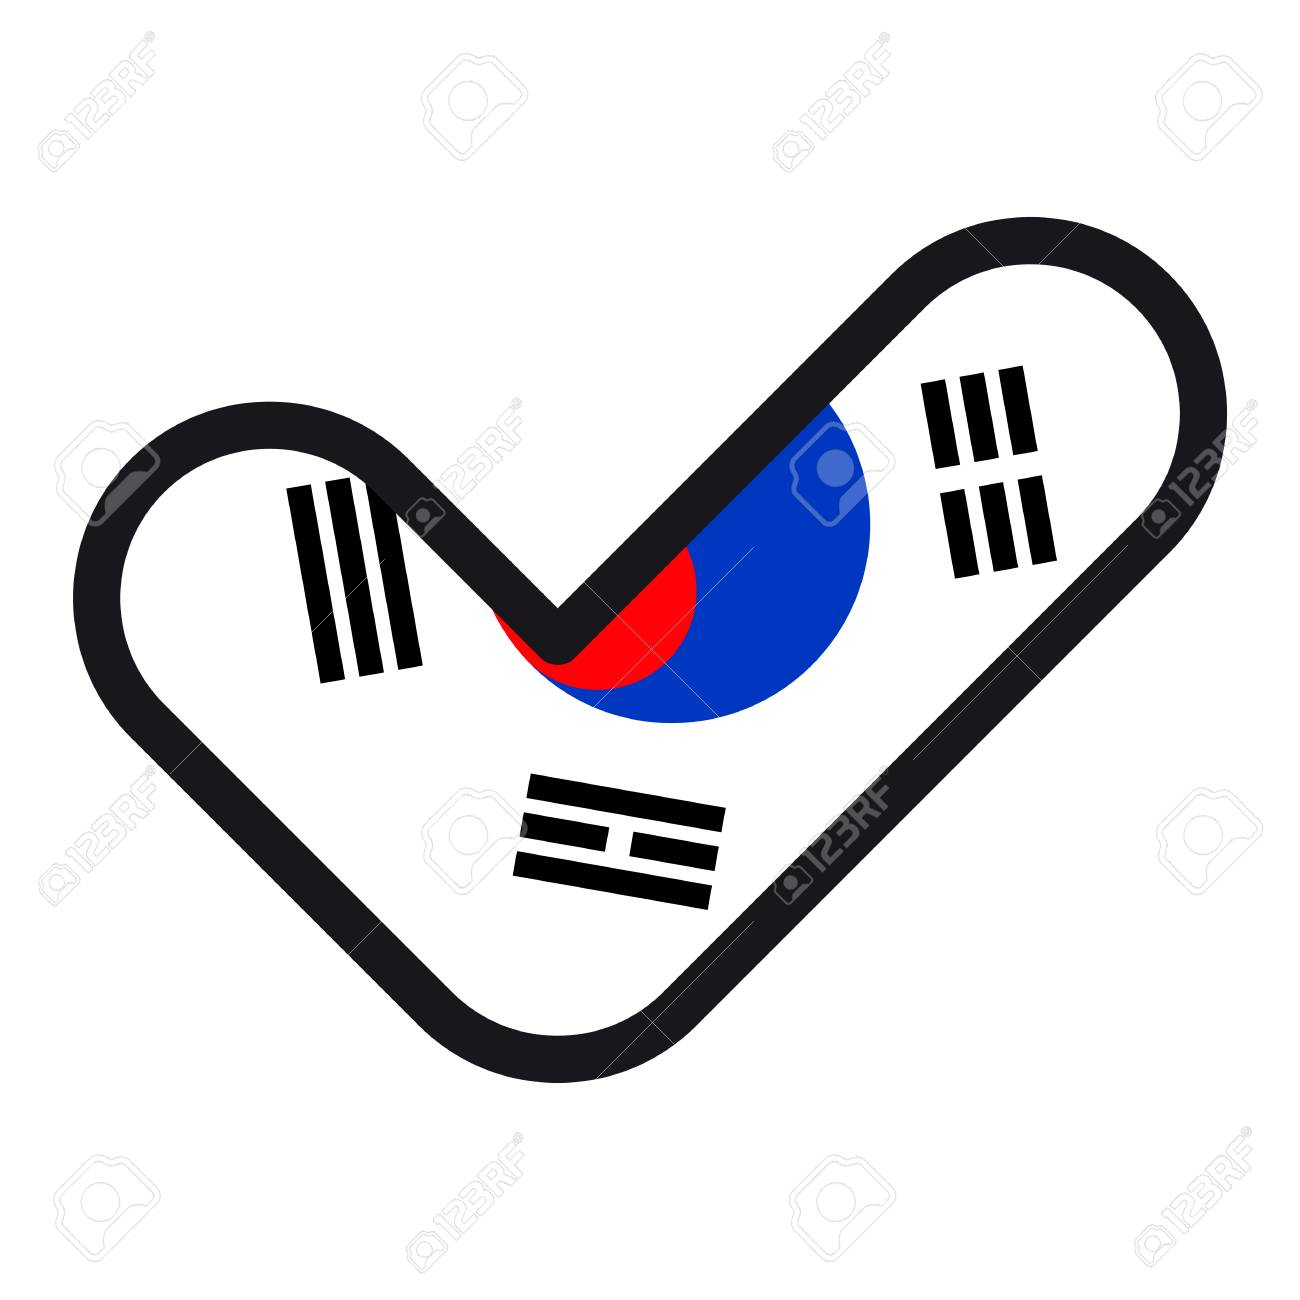 Flag of south korea in the shape of check mark vector sign approval flag of south korea in the shape of check mark vector sign approval symbol biocorpaavc Image collections